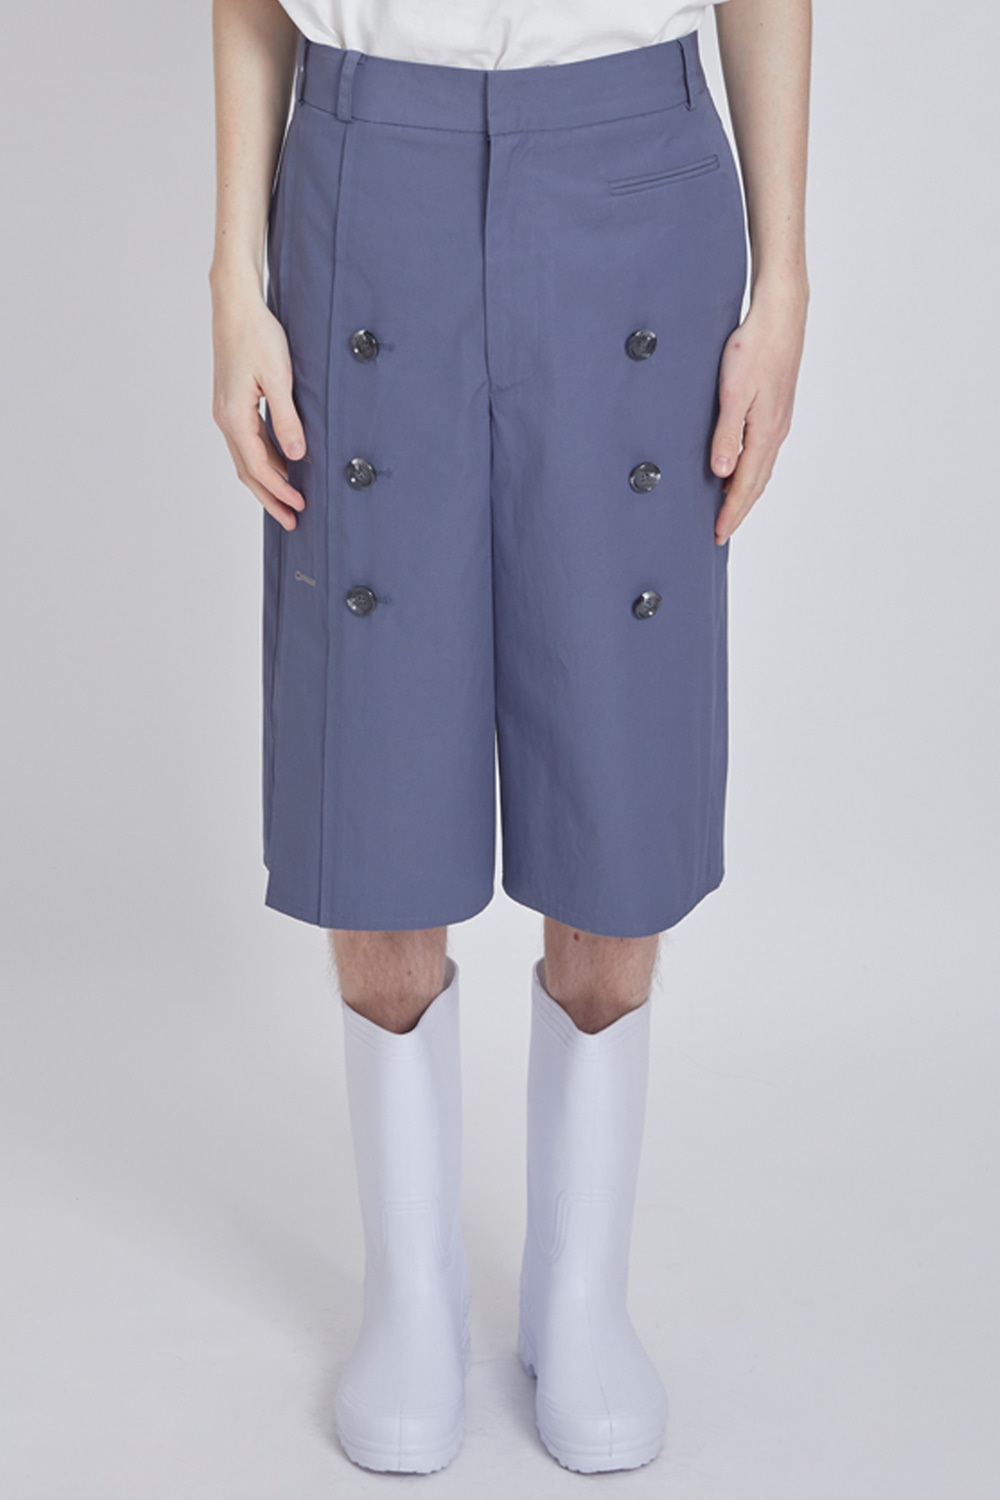 TRENCH ANKLE PANTS (SLATE BLUE)